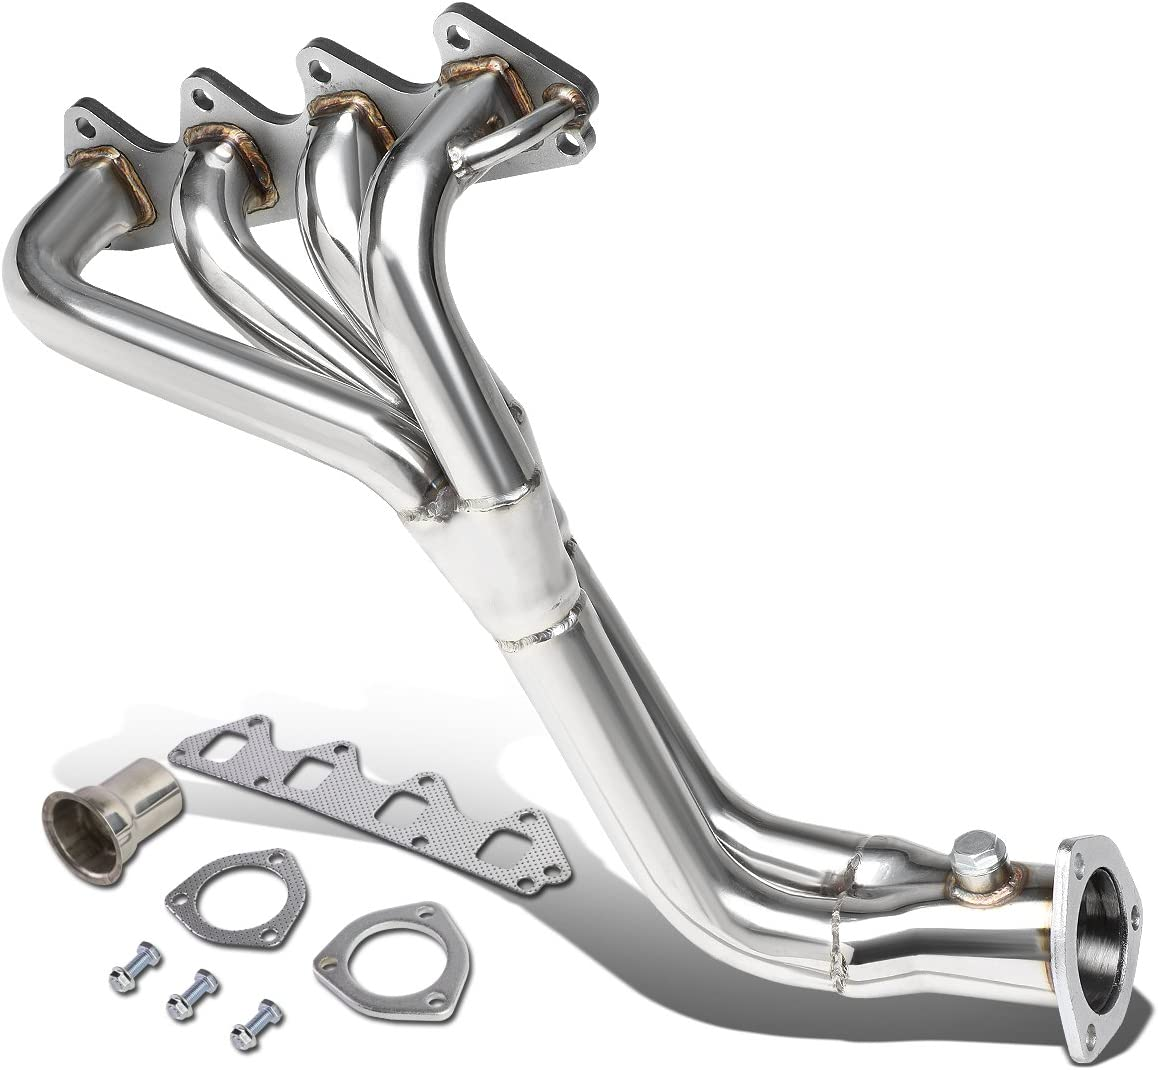 DNA Motoring HDS-SSAM86 Stainless Steel Exhaust Header Manifold